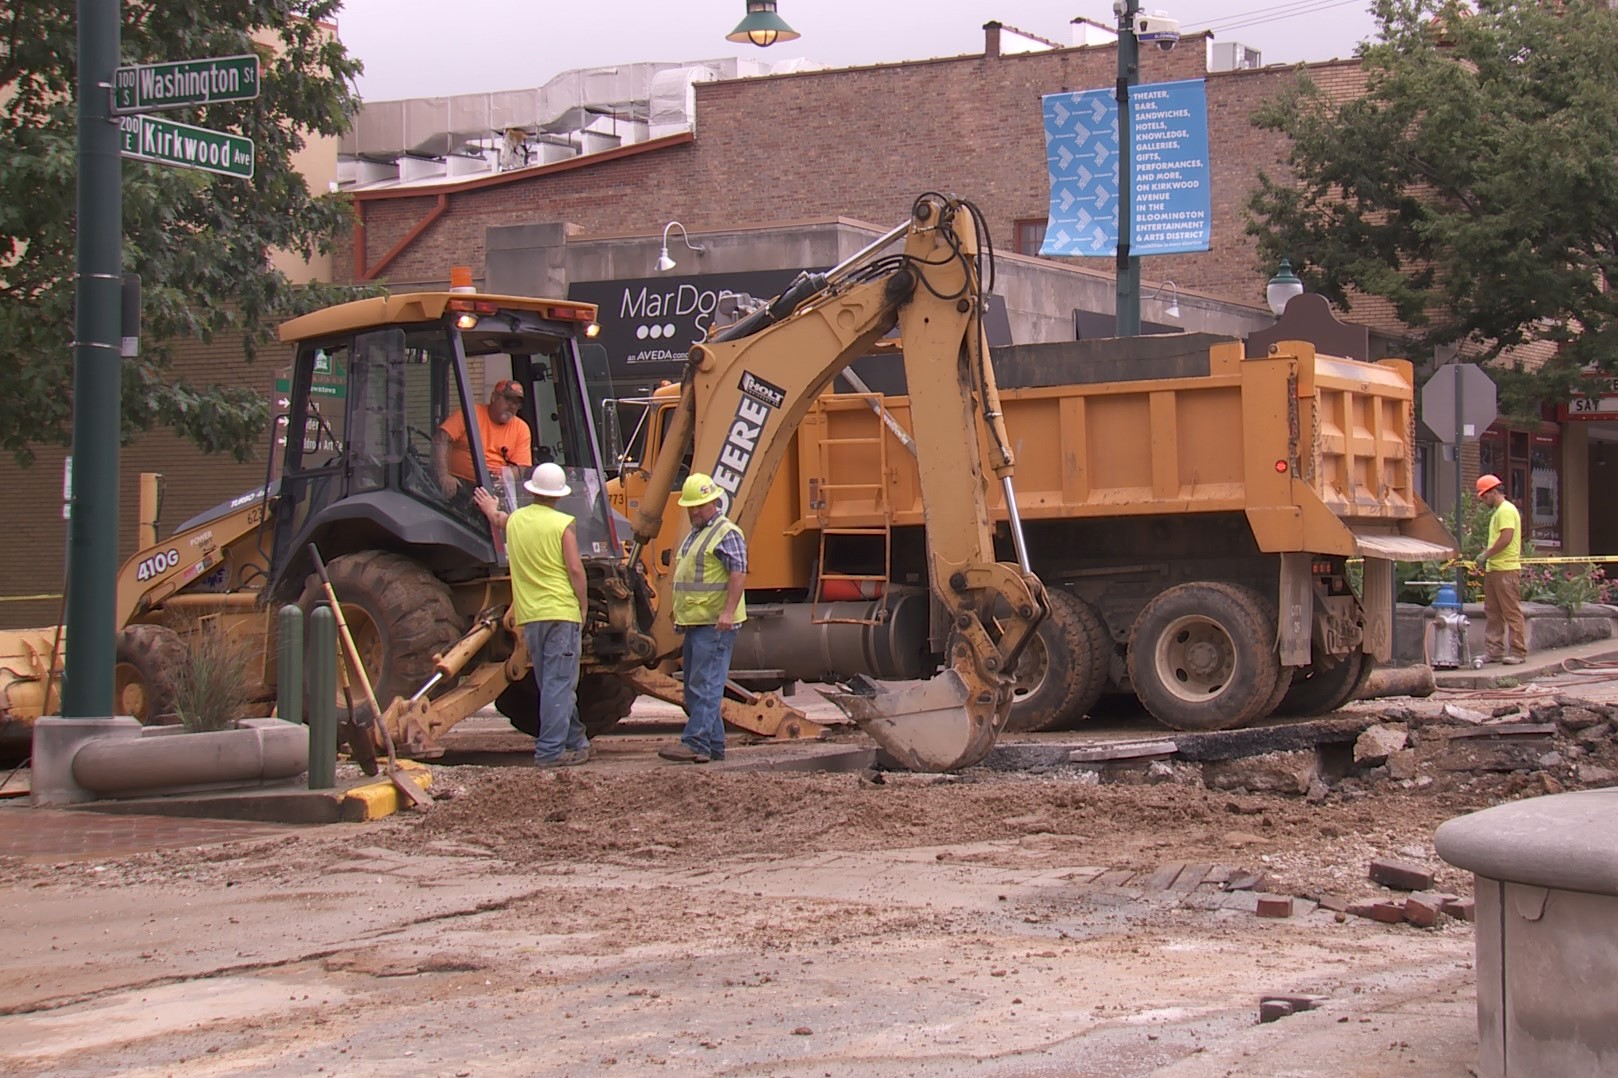 Construction workers operate a large digging mchine while fixing a water main break at the intersection of Washington and Kirkwood. July 2019.